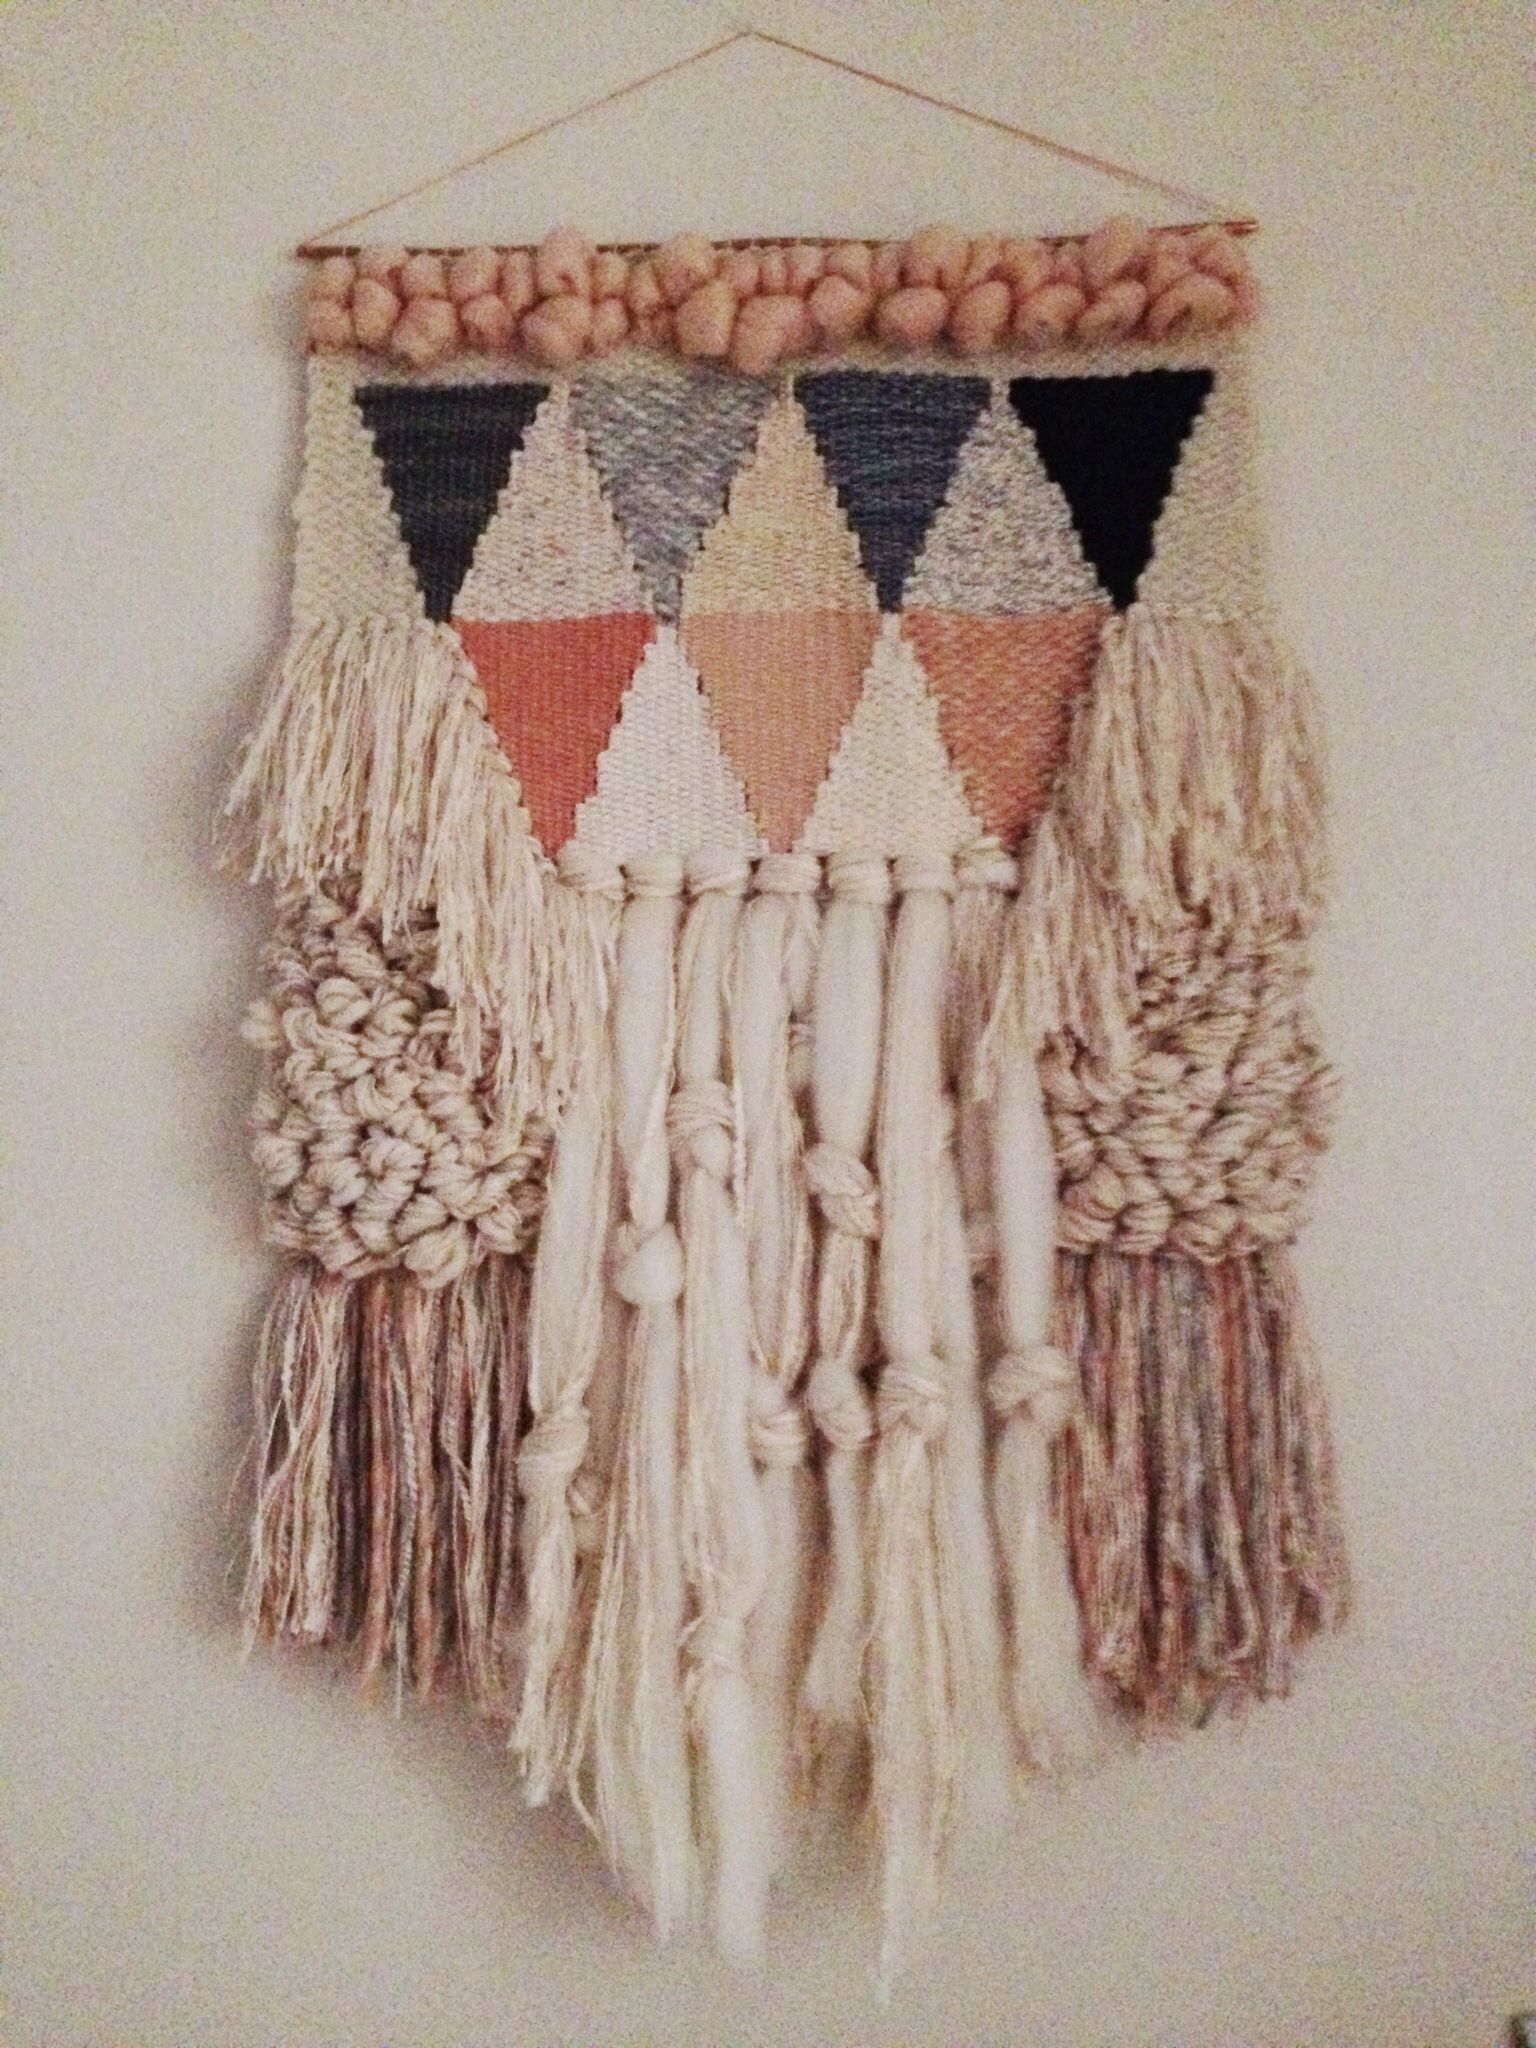 Woven Wall Hanging Weaving By Maryanne Moodie Www Maryannemoodie Com Weaving Wall Hanging Diy Weaving Weaving